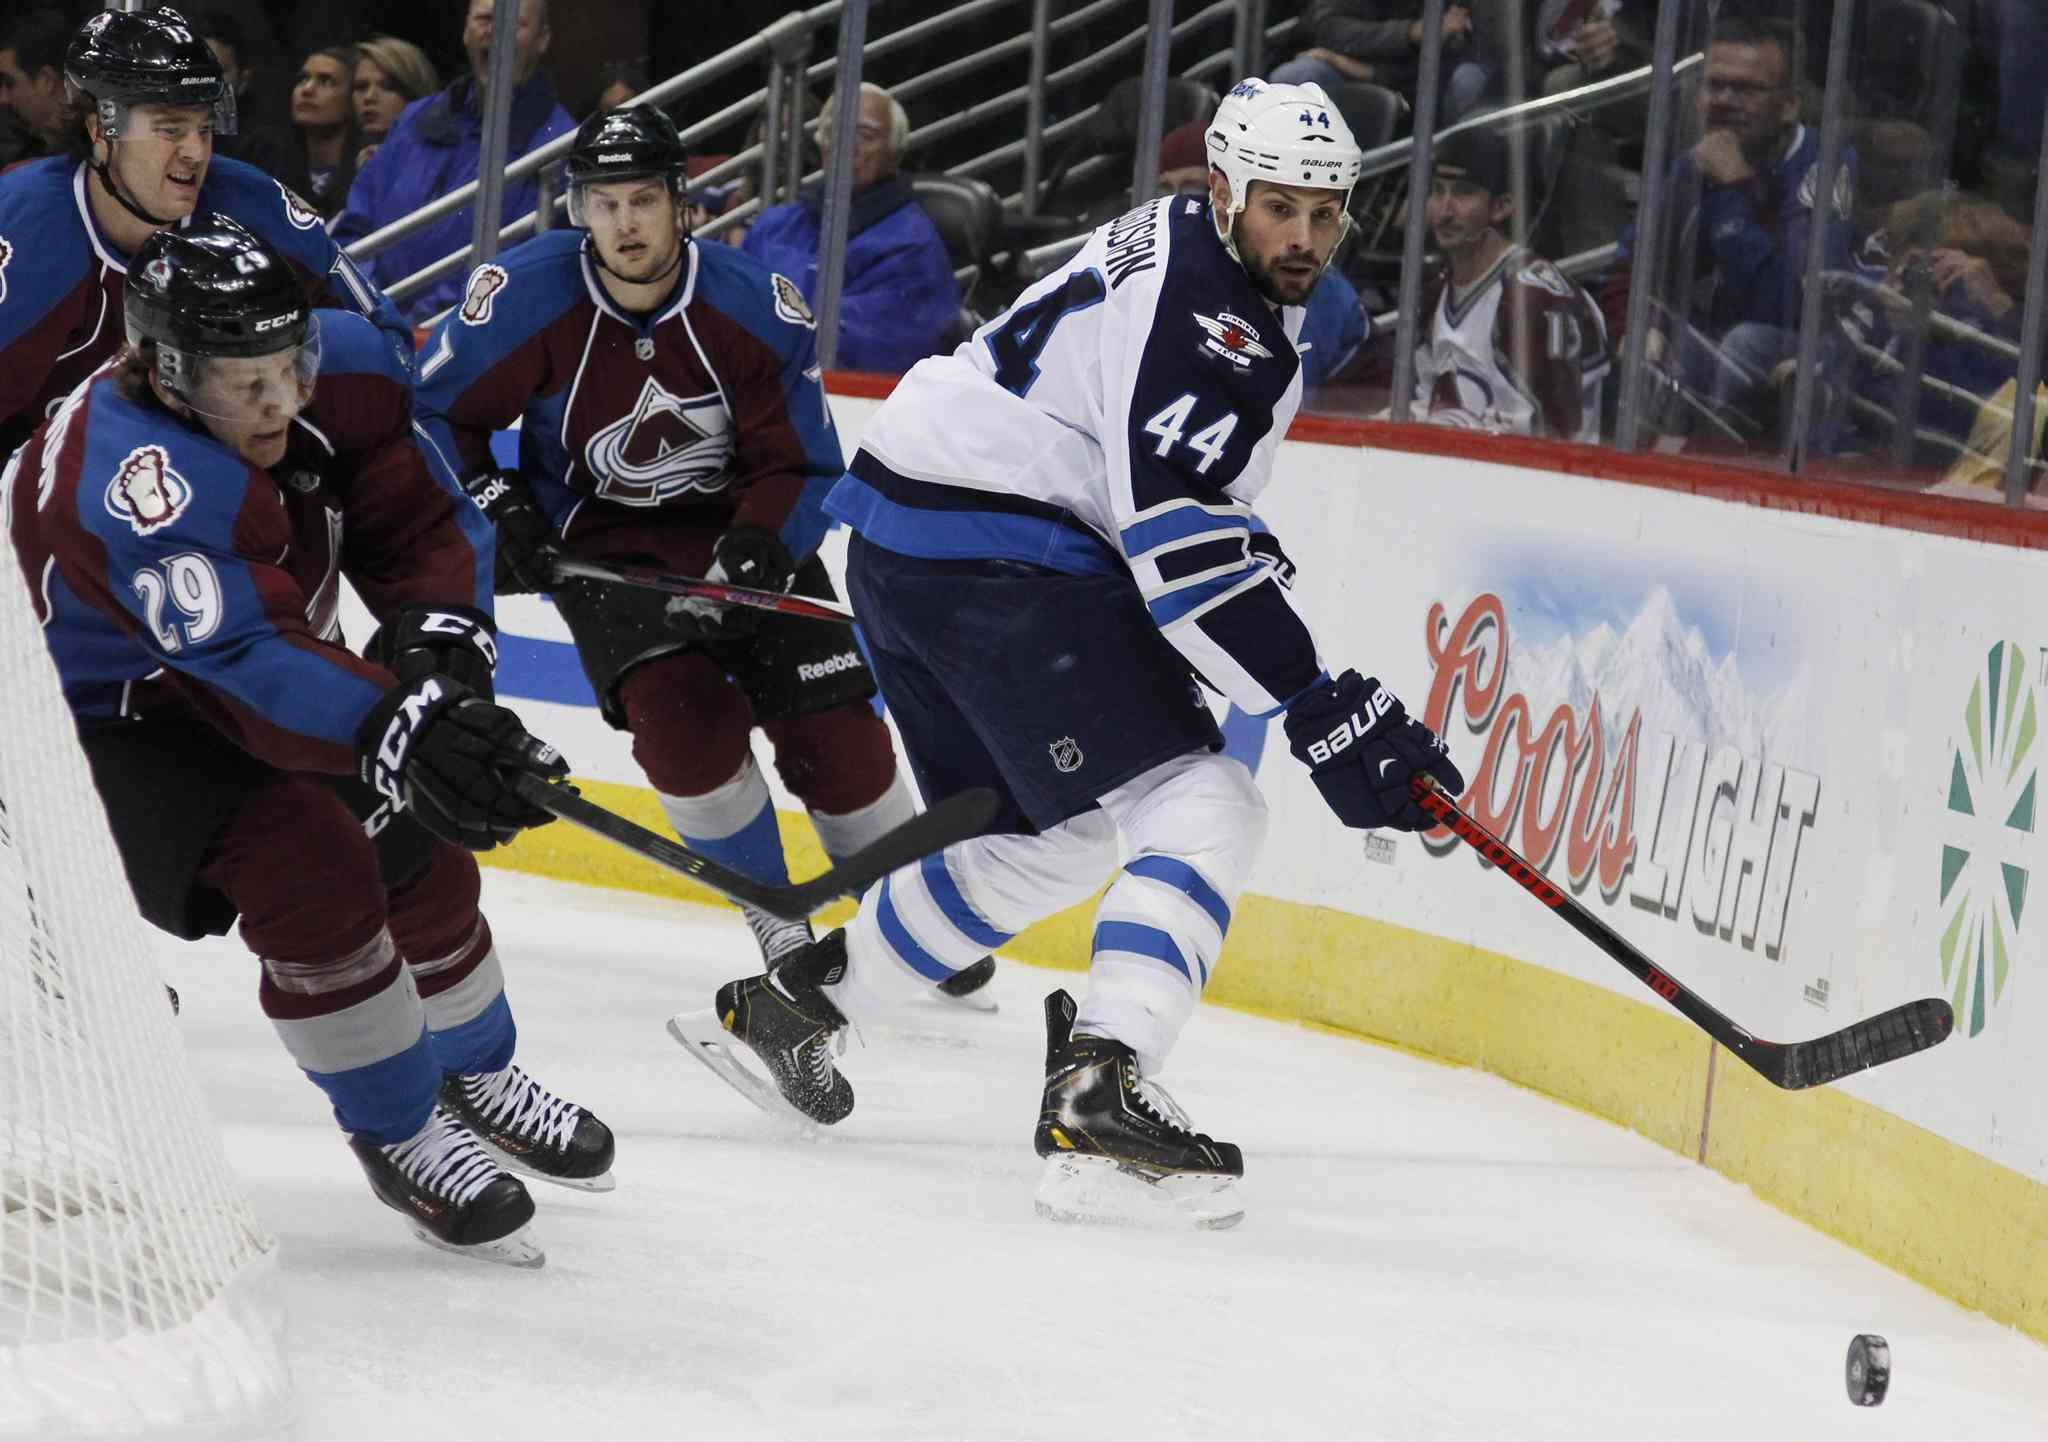 Winnipeg Jets defenseman Zach Bogosian (right) clears the puck from behind the net as Nathan MacKinnon (left) and John Mitchell give chase during the second period.